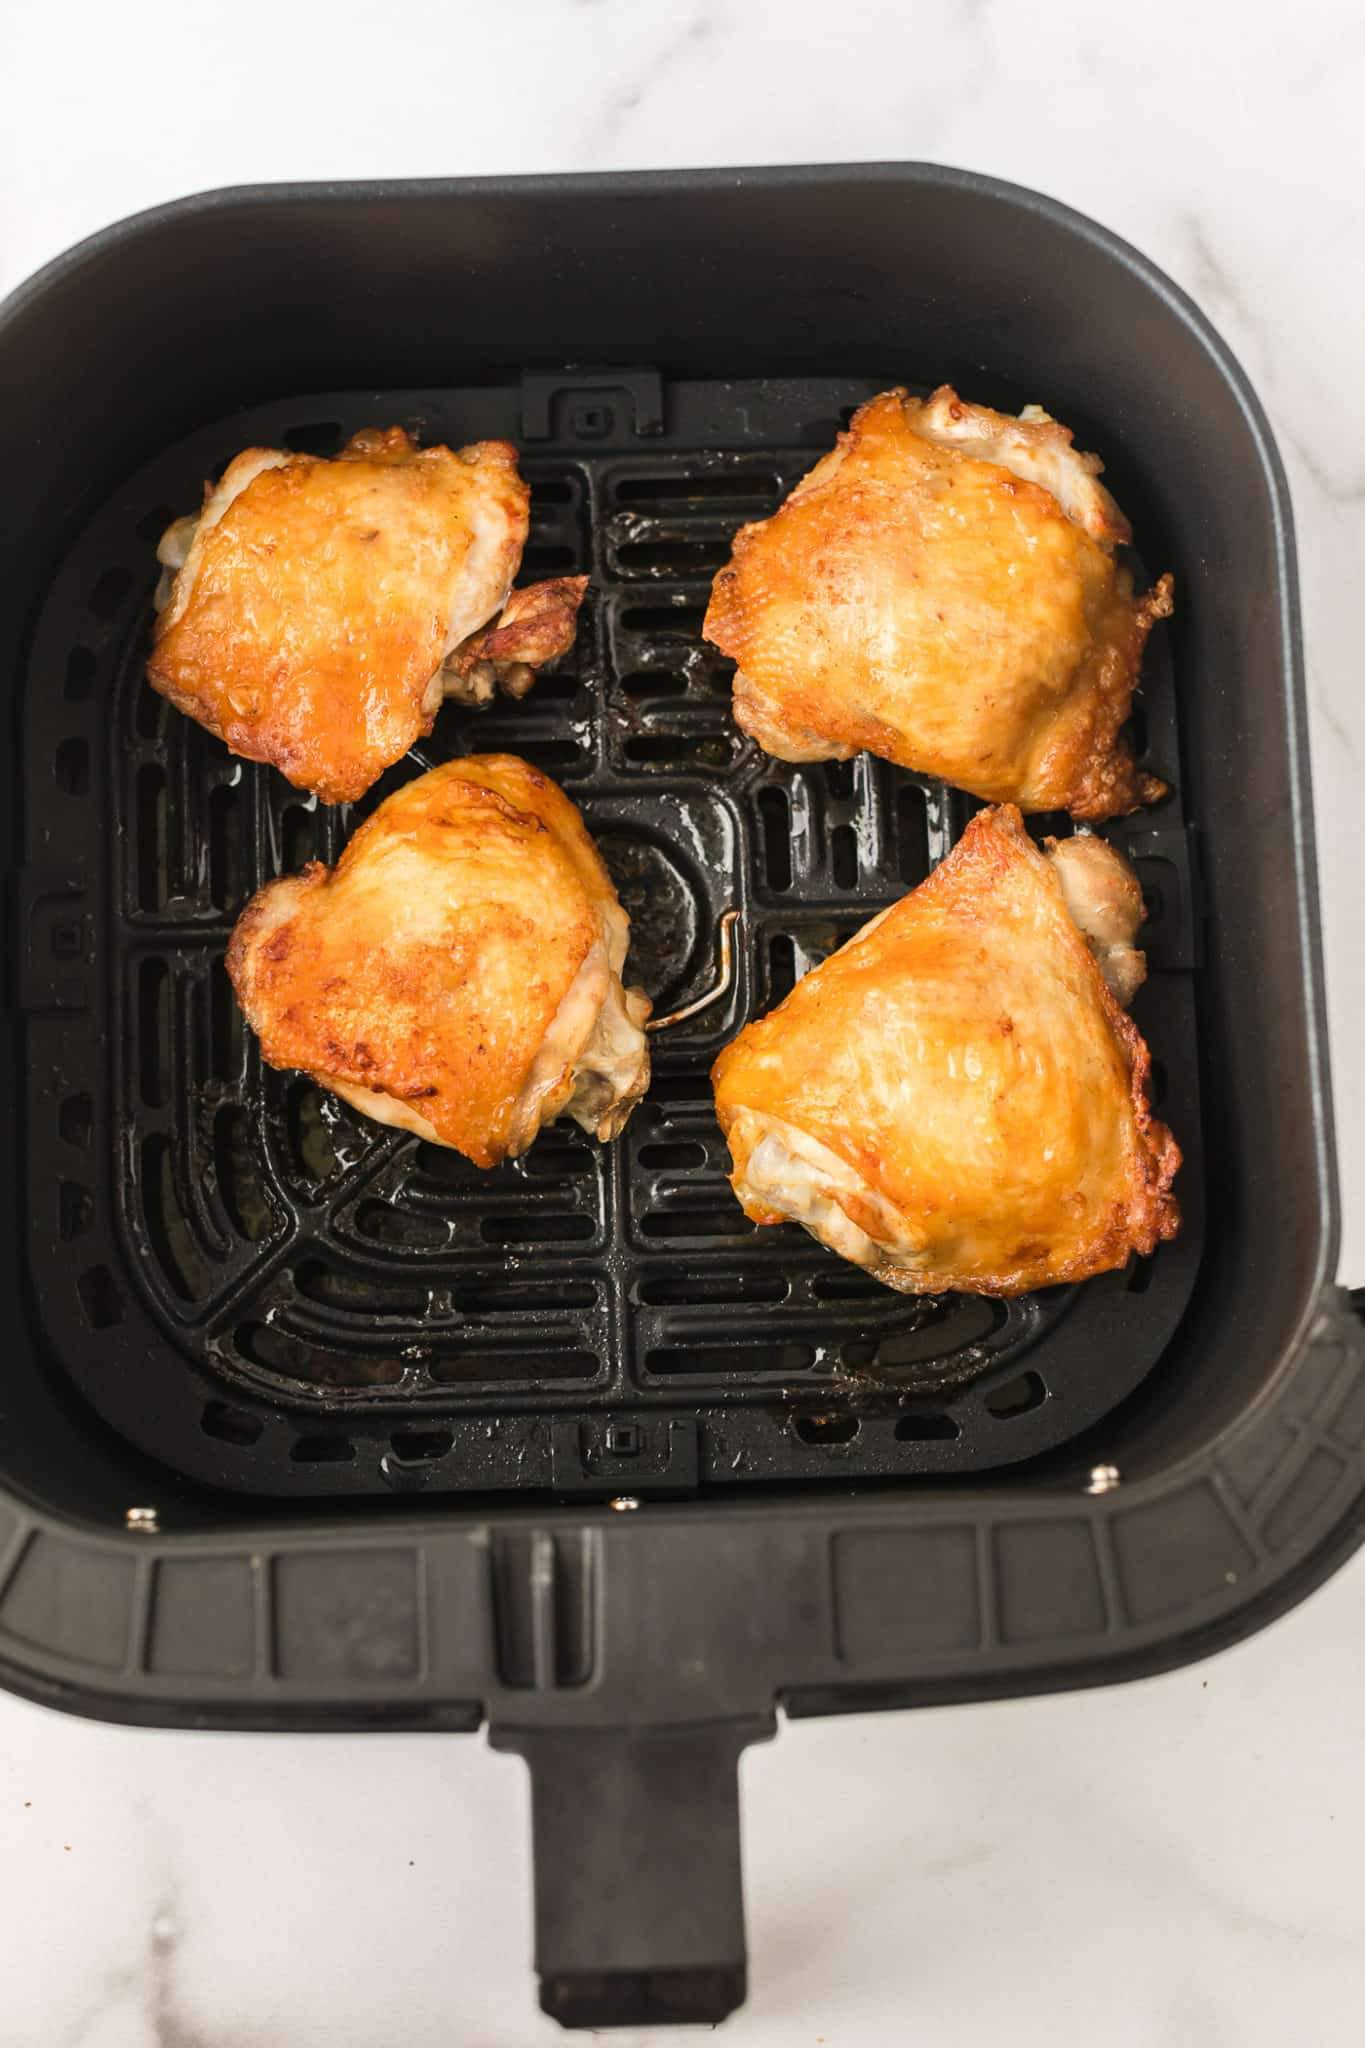 cooked air fryer chicken thighs ready to be served